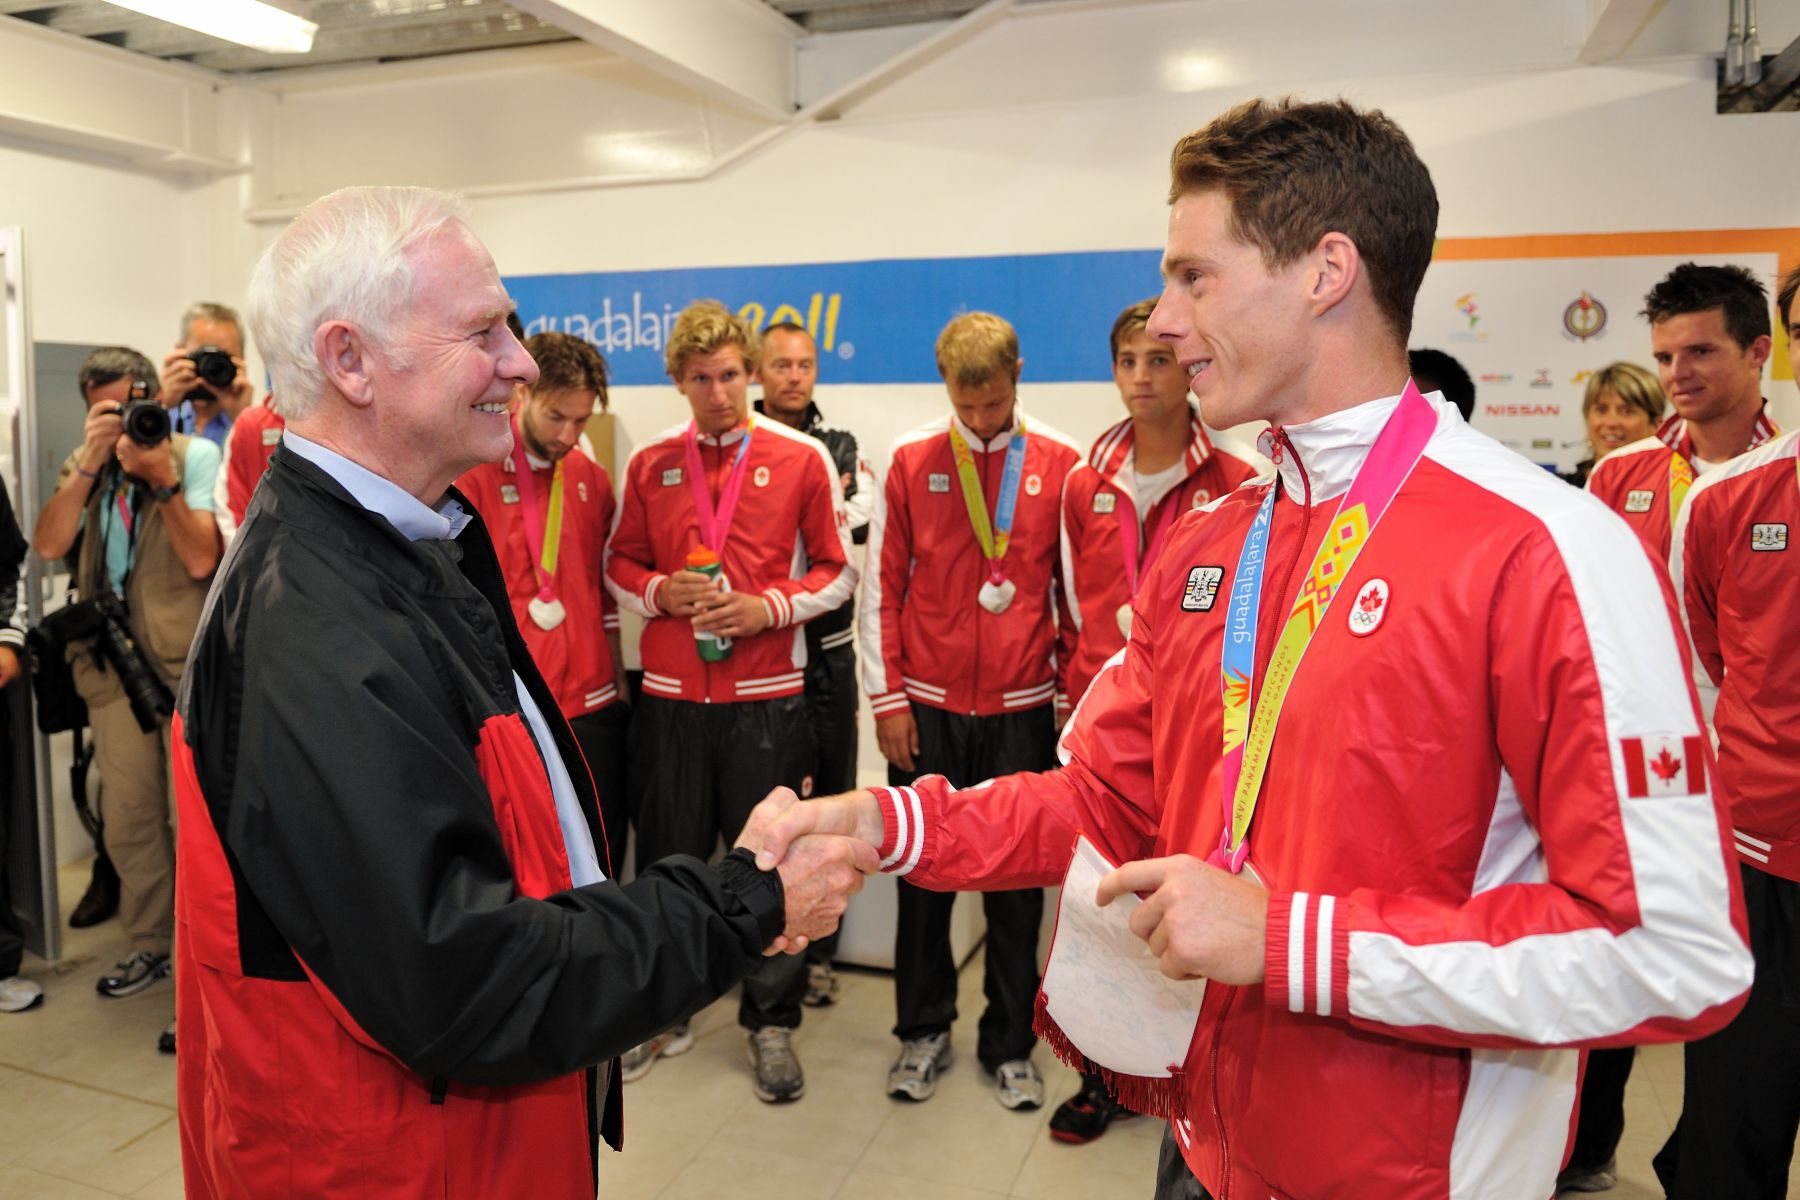 After the match, the Governor General had the opportunity to meet with Team Canada members and congratulate them.